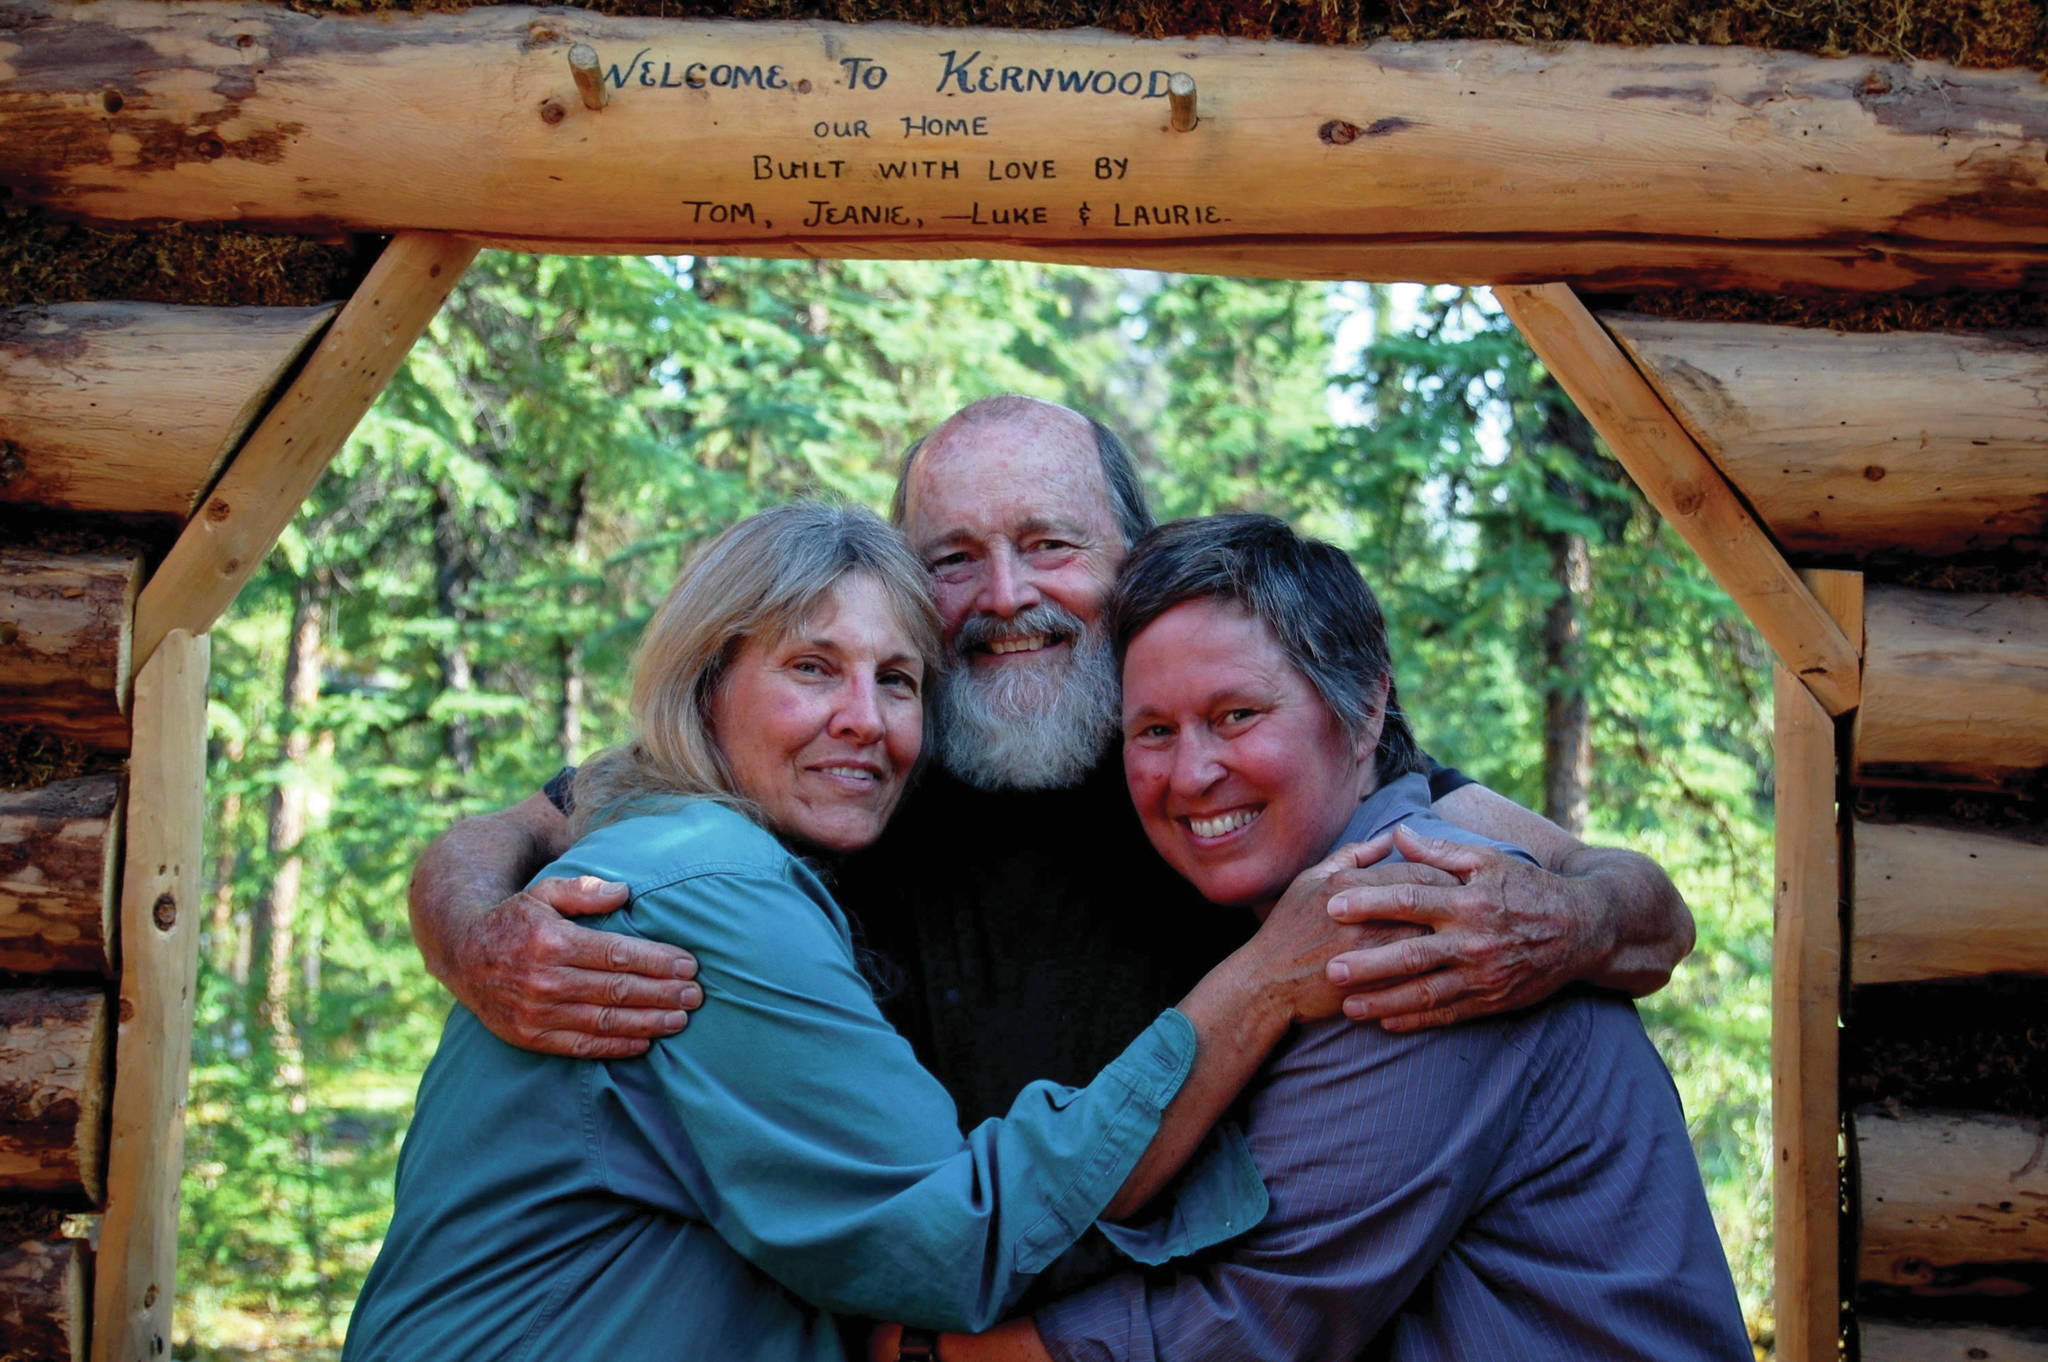 """Jean Aspen, Tom Irons and Laurie Schacht in a still photo from the movie """"ReWilding Kernwood,"""" filmed from 2016 to 2018 on the Chandalar River in the Brooks Range, Alaska. (Photo courtesy of Jean Aspen)"""